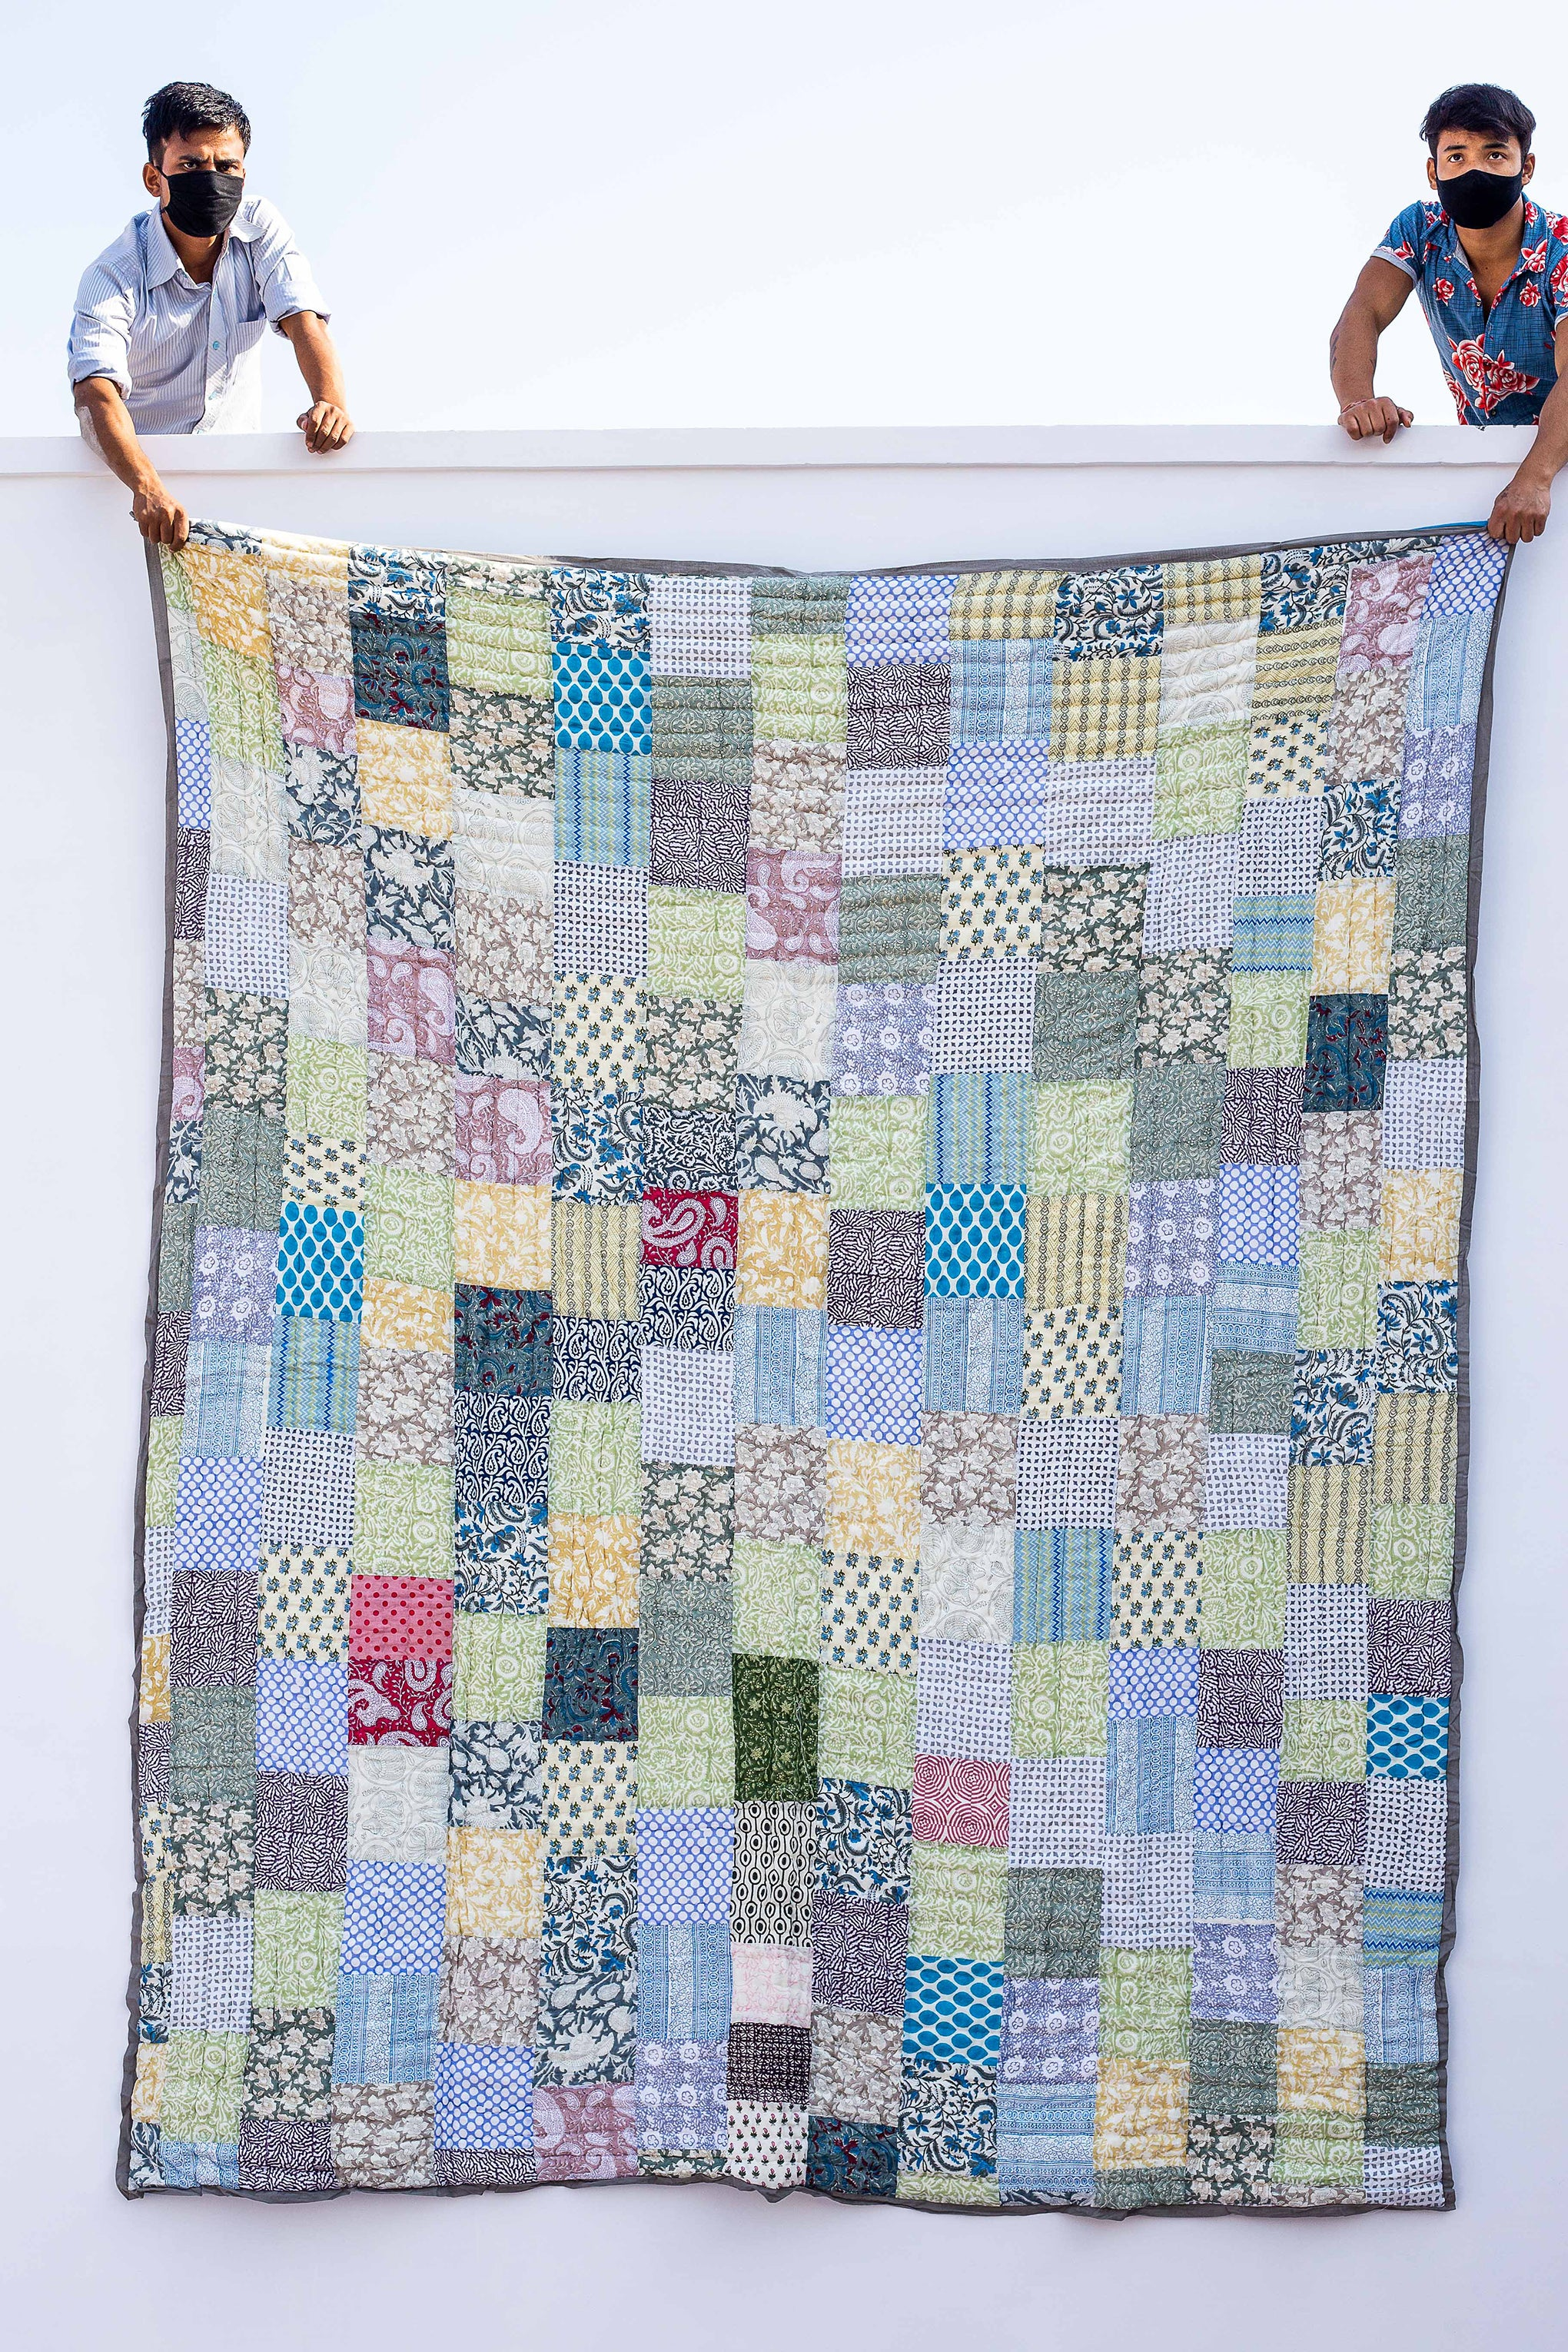 Roysha 2021 Patchwork Queen Quilt ,100 Percent Handmade, Hand Block printed, Jaipuri Razai, Hand Quilted, Natural Cotton, Blue, QPW-312